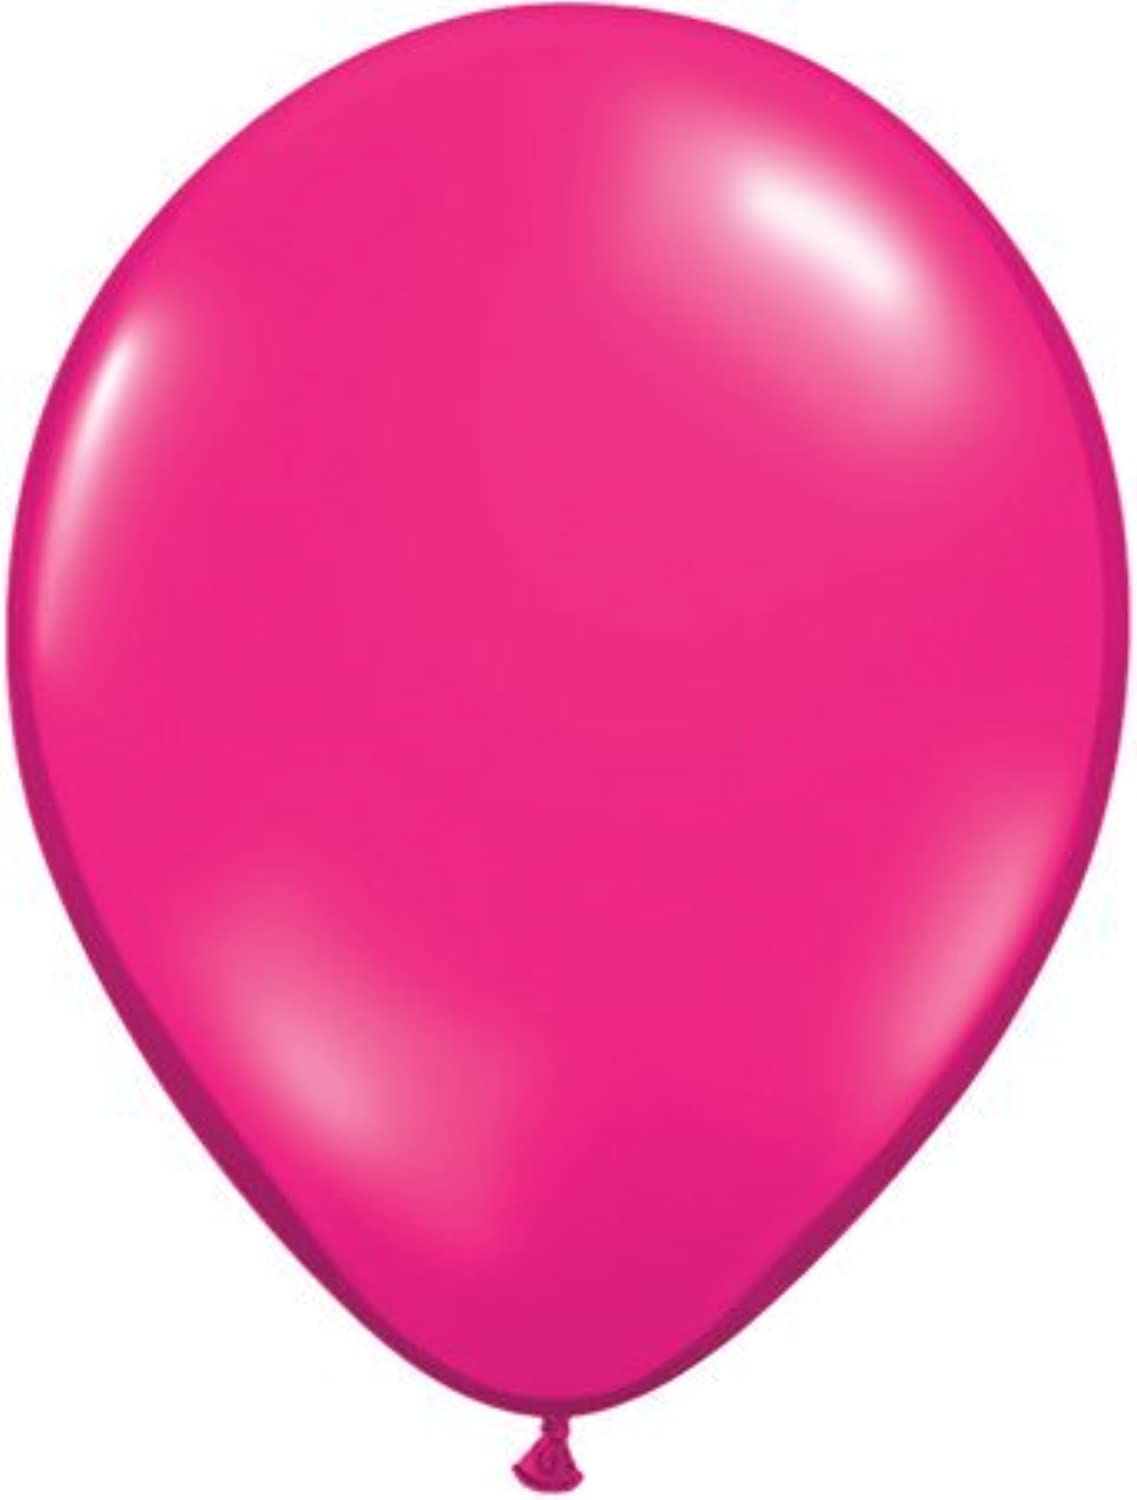 Jewel Magenta Pink 11 Qualatex Latex Balloons x 25 by Jewel Finish Solid Colour 3ft Latex